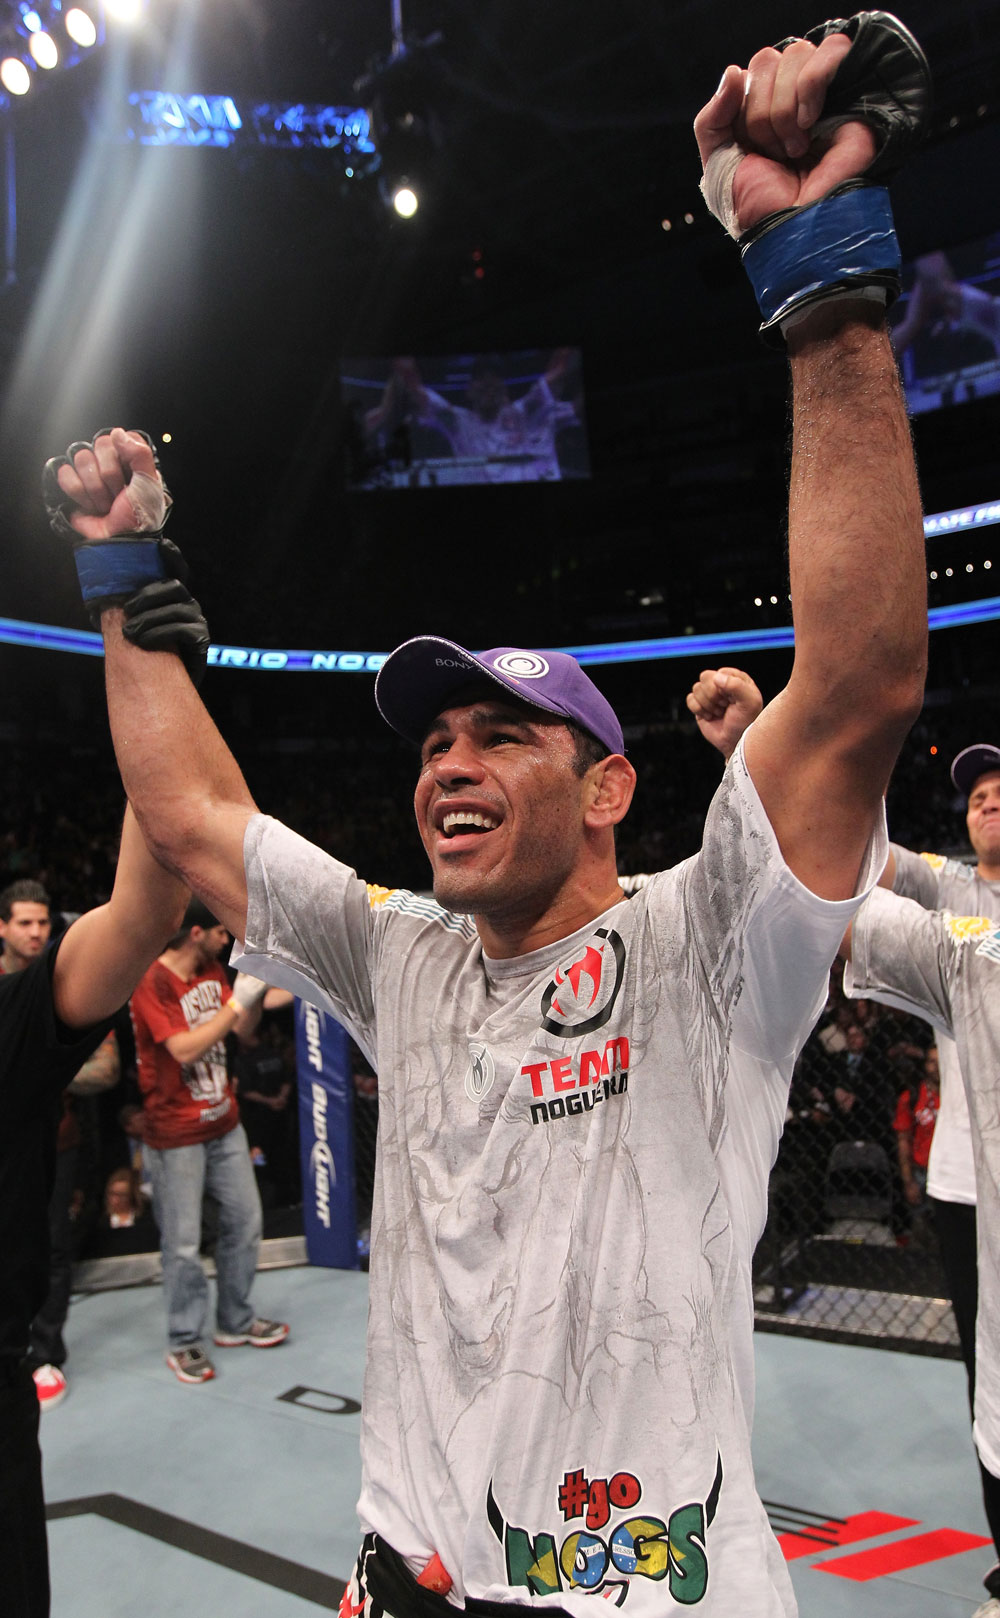 TORONTO, ON - DECEMBER 10:  Antonio Rogerio Nogueira reacts after defeating Tito Ortiz during the UFC 140 event at Air Canada Centre on December 10, 2011 in Toronto, Ontario, Canada.  (Photo by Nick Laham/Zuffa LLC/Zuffa LLC via Getty Images)